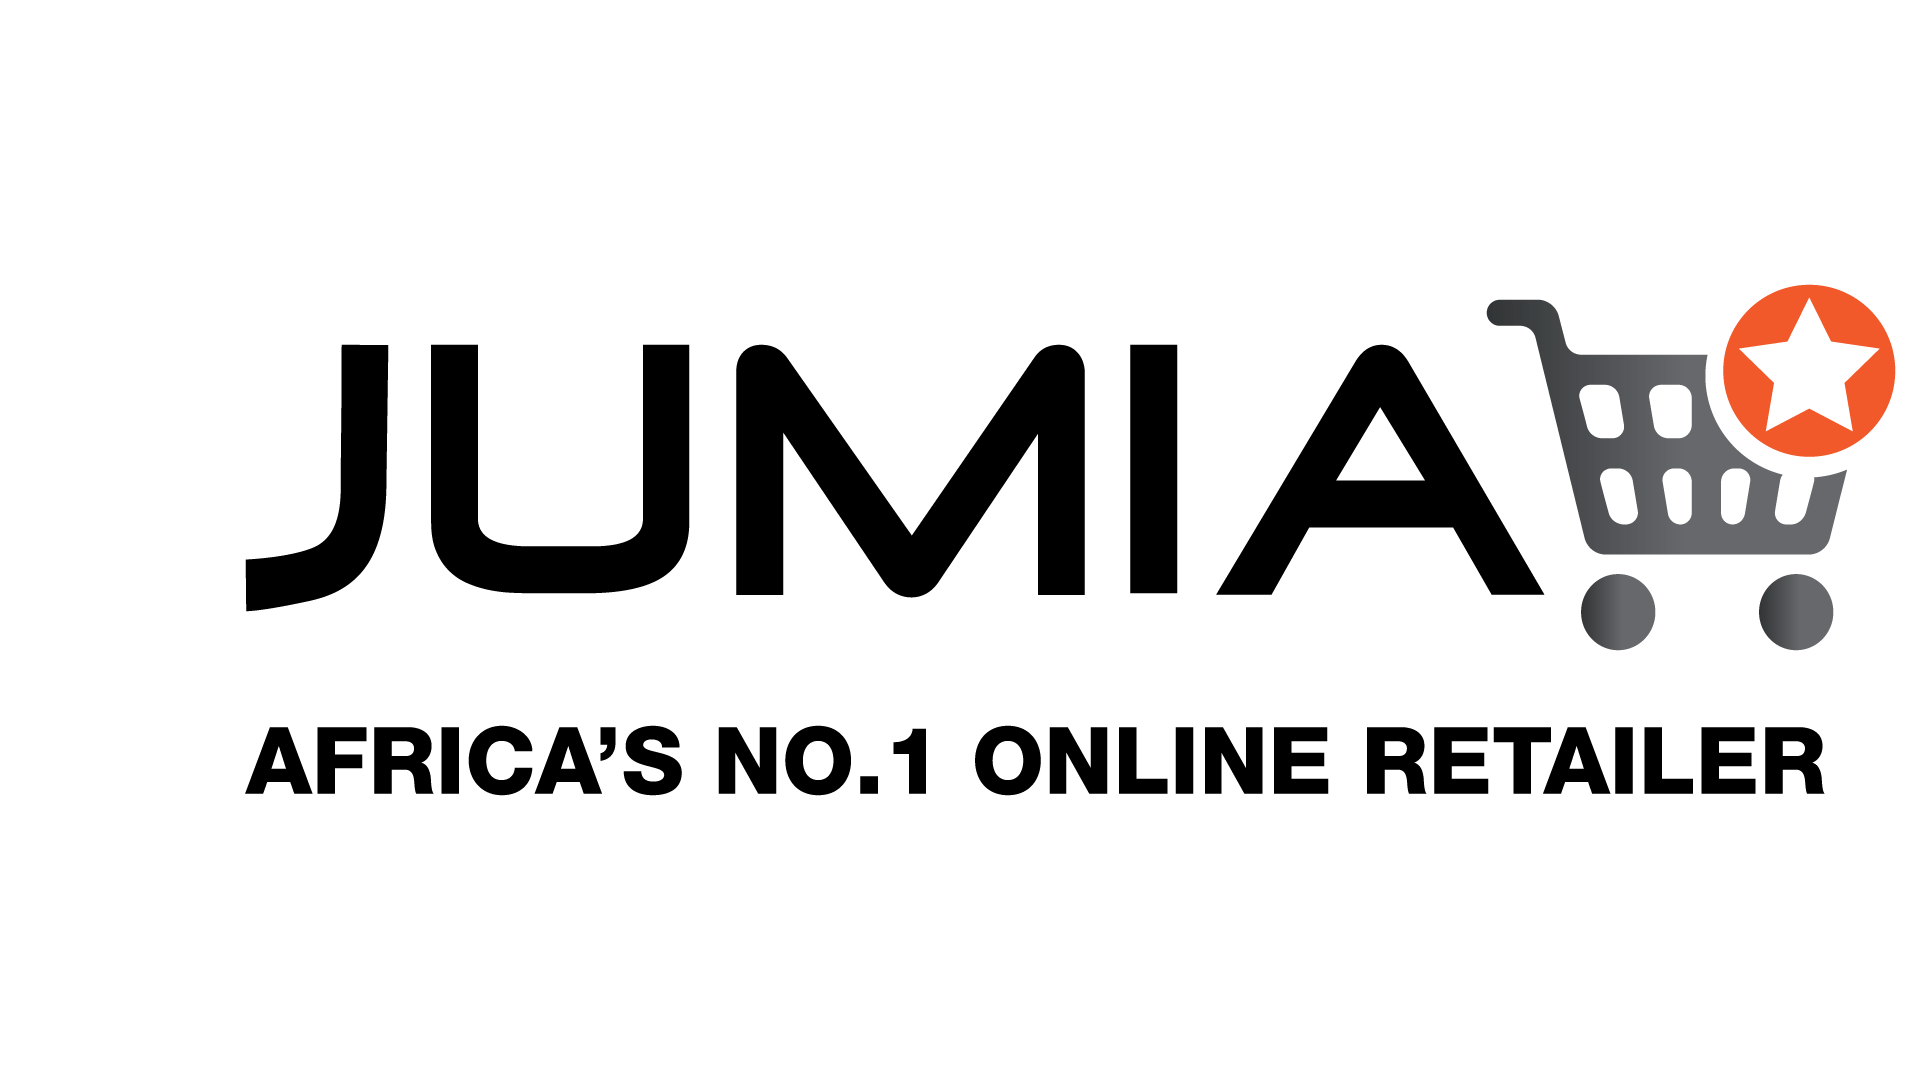 442197257134177498 further Top 50 Most Viewed Us Youtube Channels 01 02 2017 additionally 132557 Jumia Nigeria Online Shopping together with Euro Stoxx 50 besides Niggas Money  e In Roman Numerals. on amazon logo mean